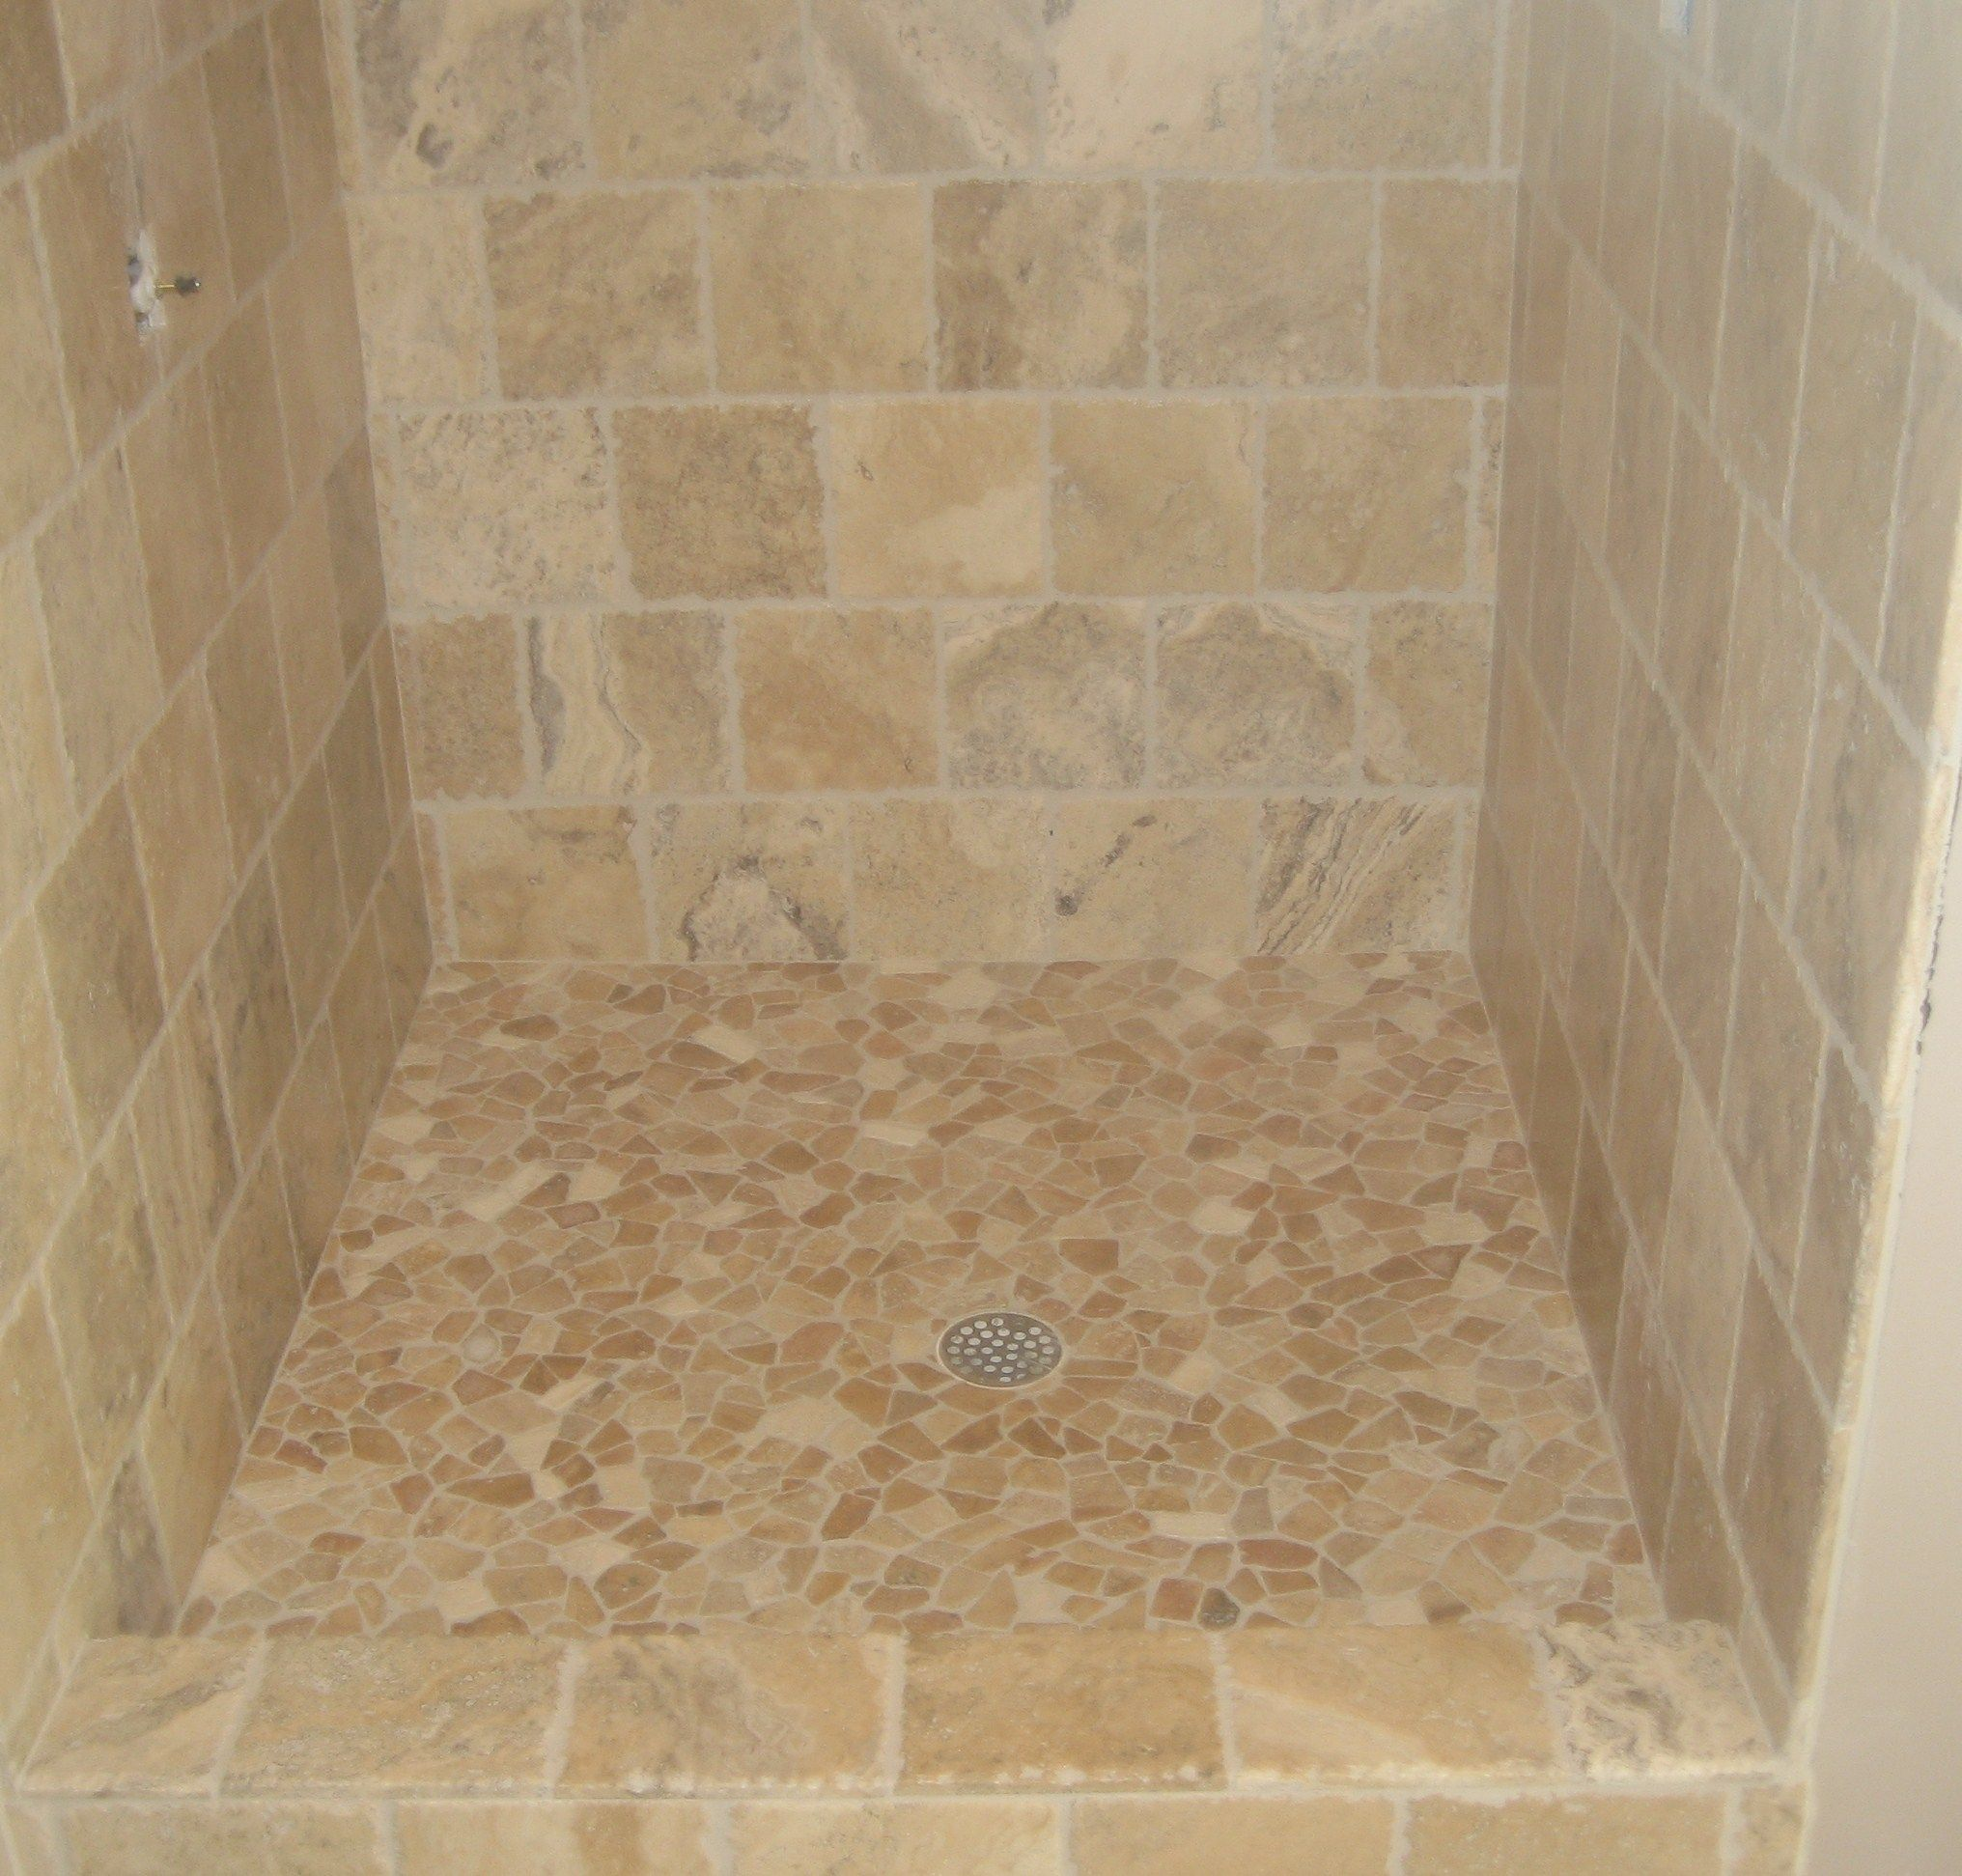 How To Tile A Shower Floor With A Shower Pan And How To Clean Shower Floor  Tile Grout